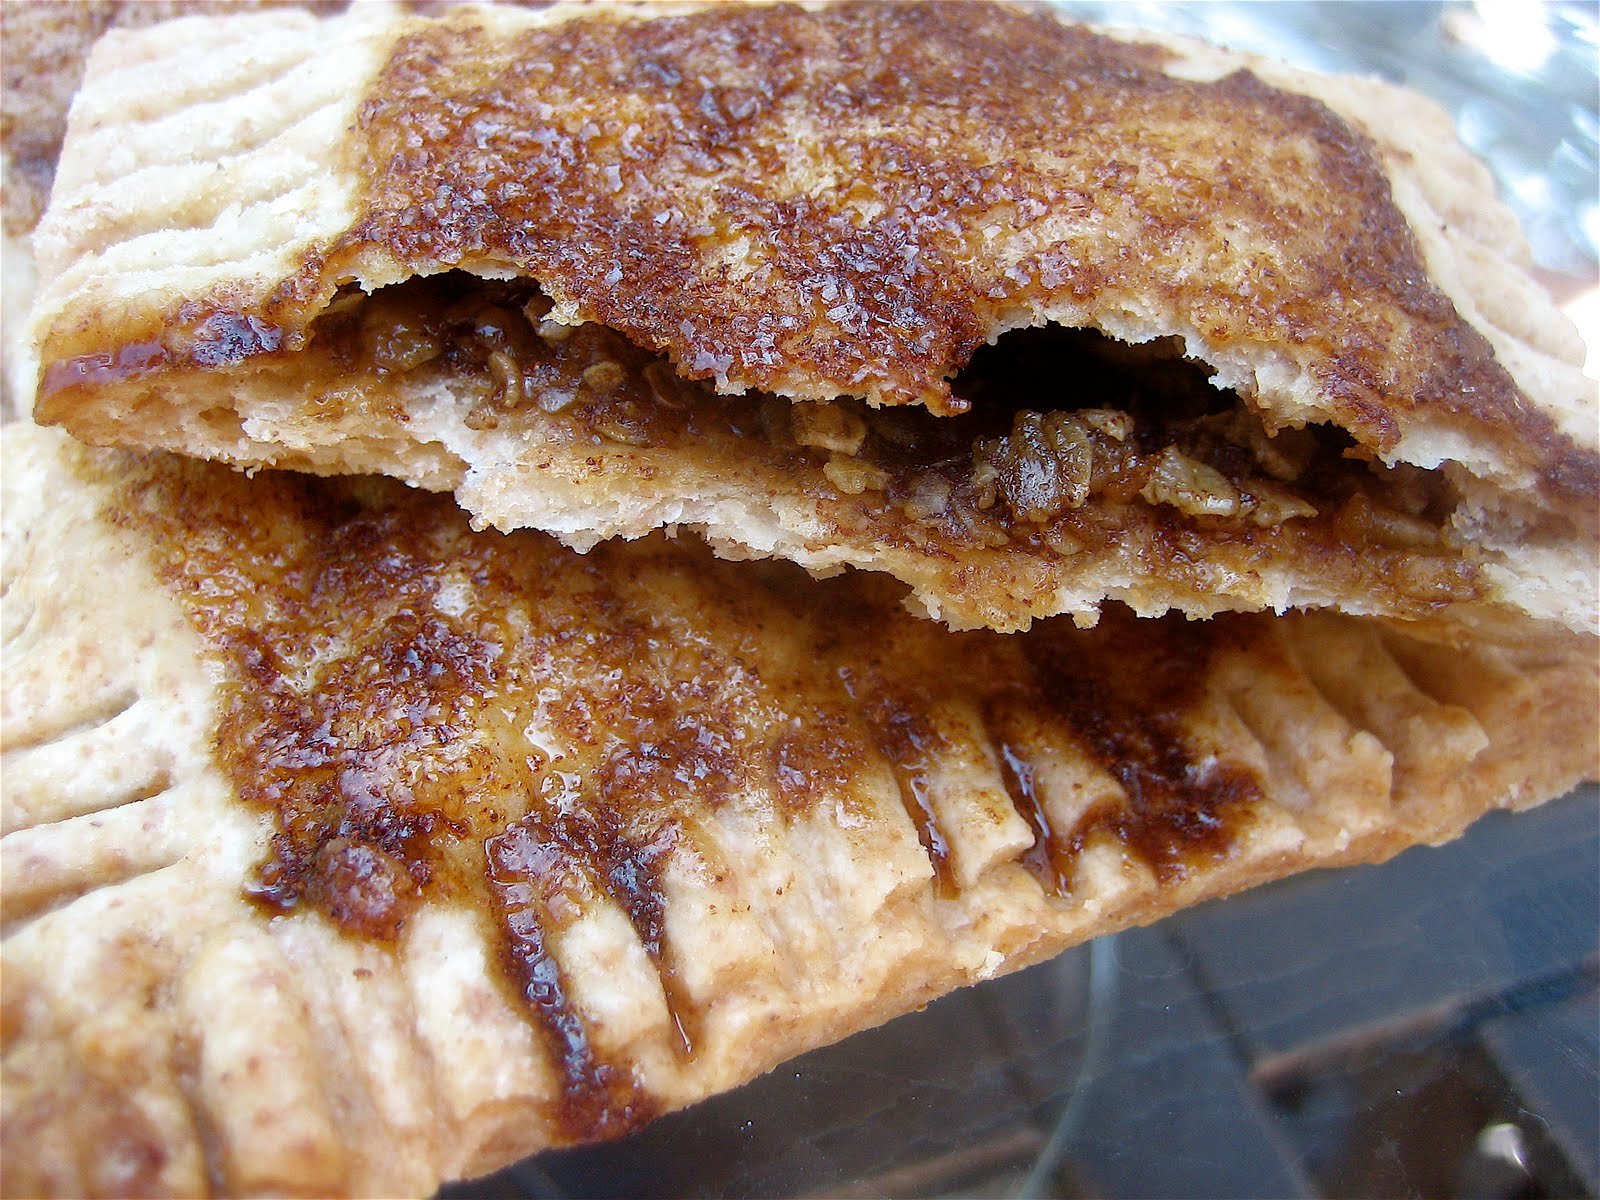 Stephanie Cooks: Brown Sugar Cinnamon Pop-tarts